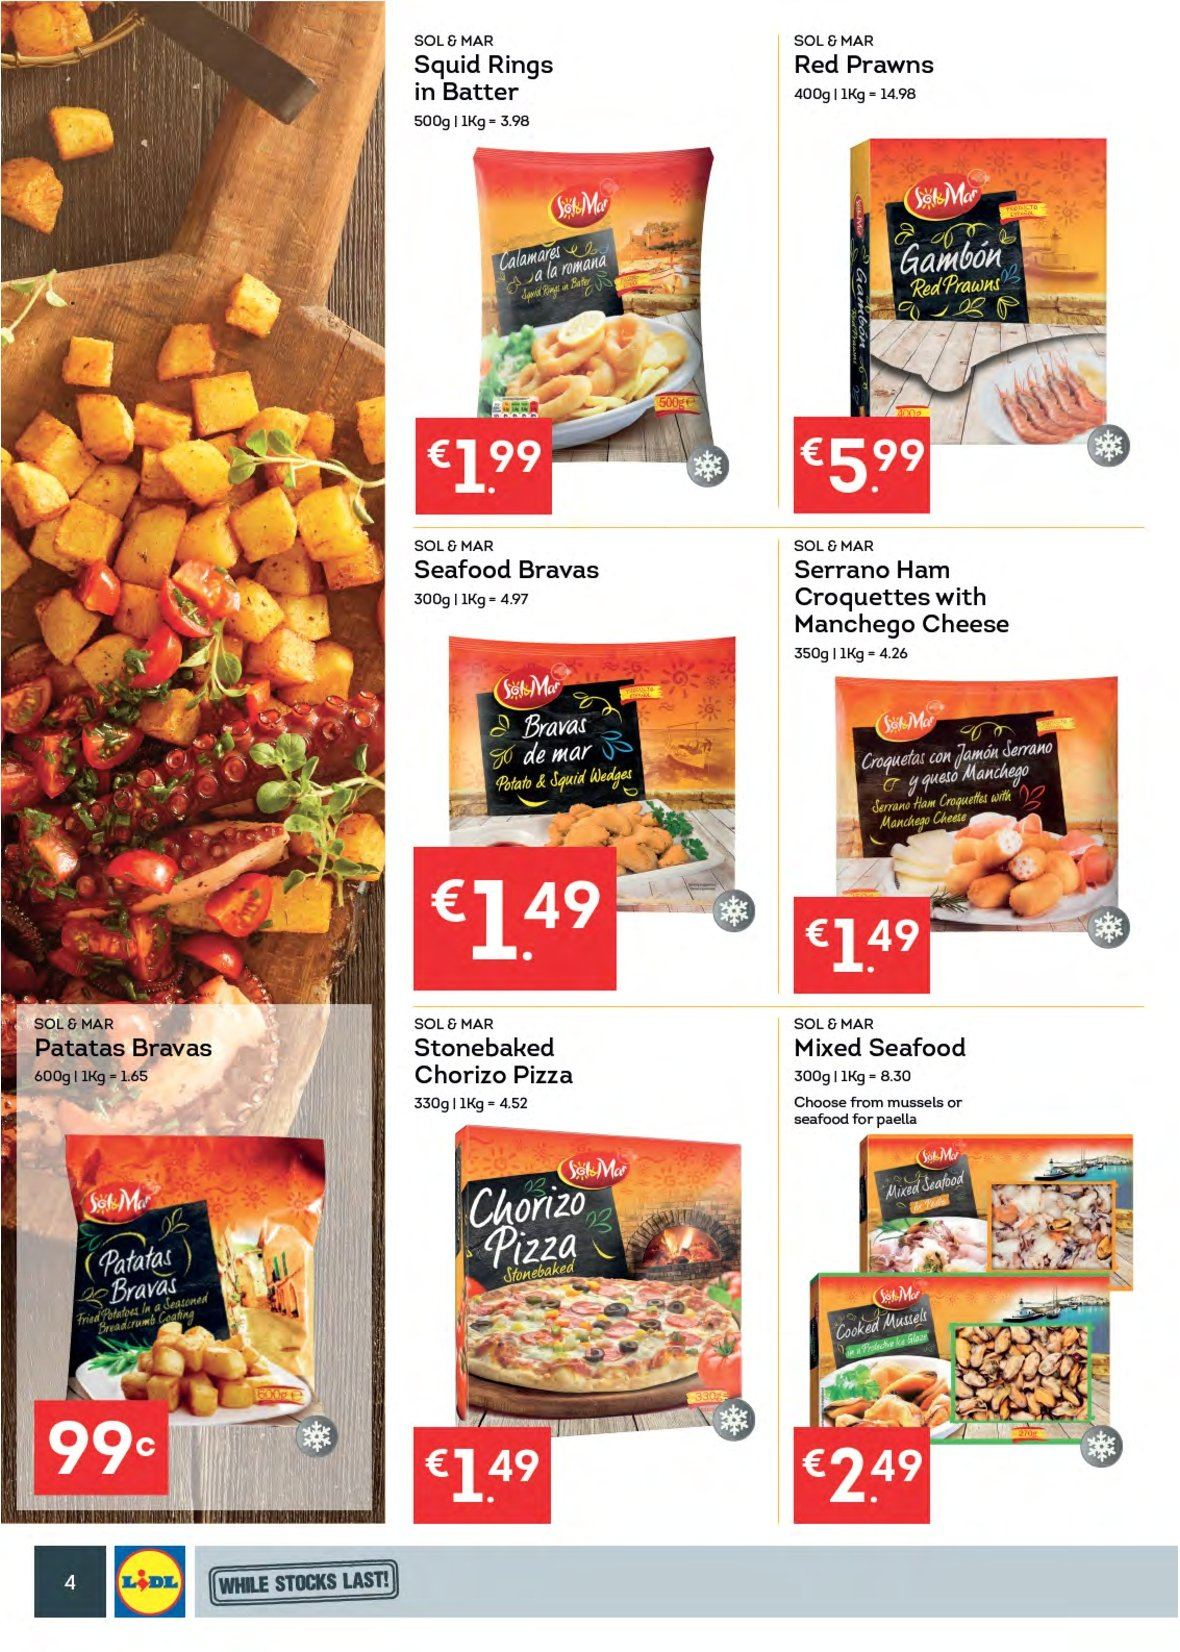 Lidl offer  - 6.8.2018 - 12.8.2018 - Sales products - mussel, squid, seafood, prawns, squid rings, pizza, ham, chorizo, manchego, cheese, batter, paella, potato croquettes, Sol. Page 4.